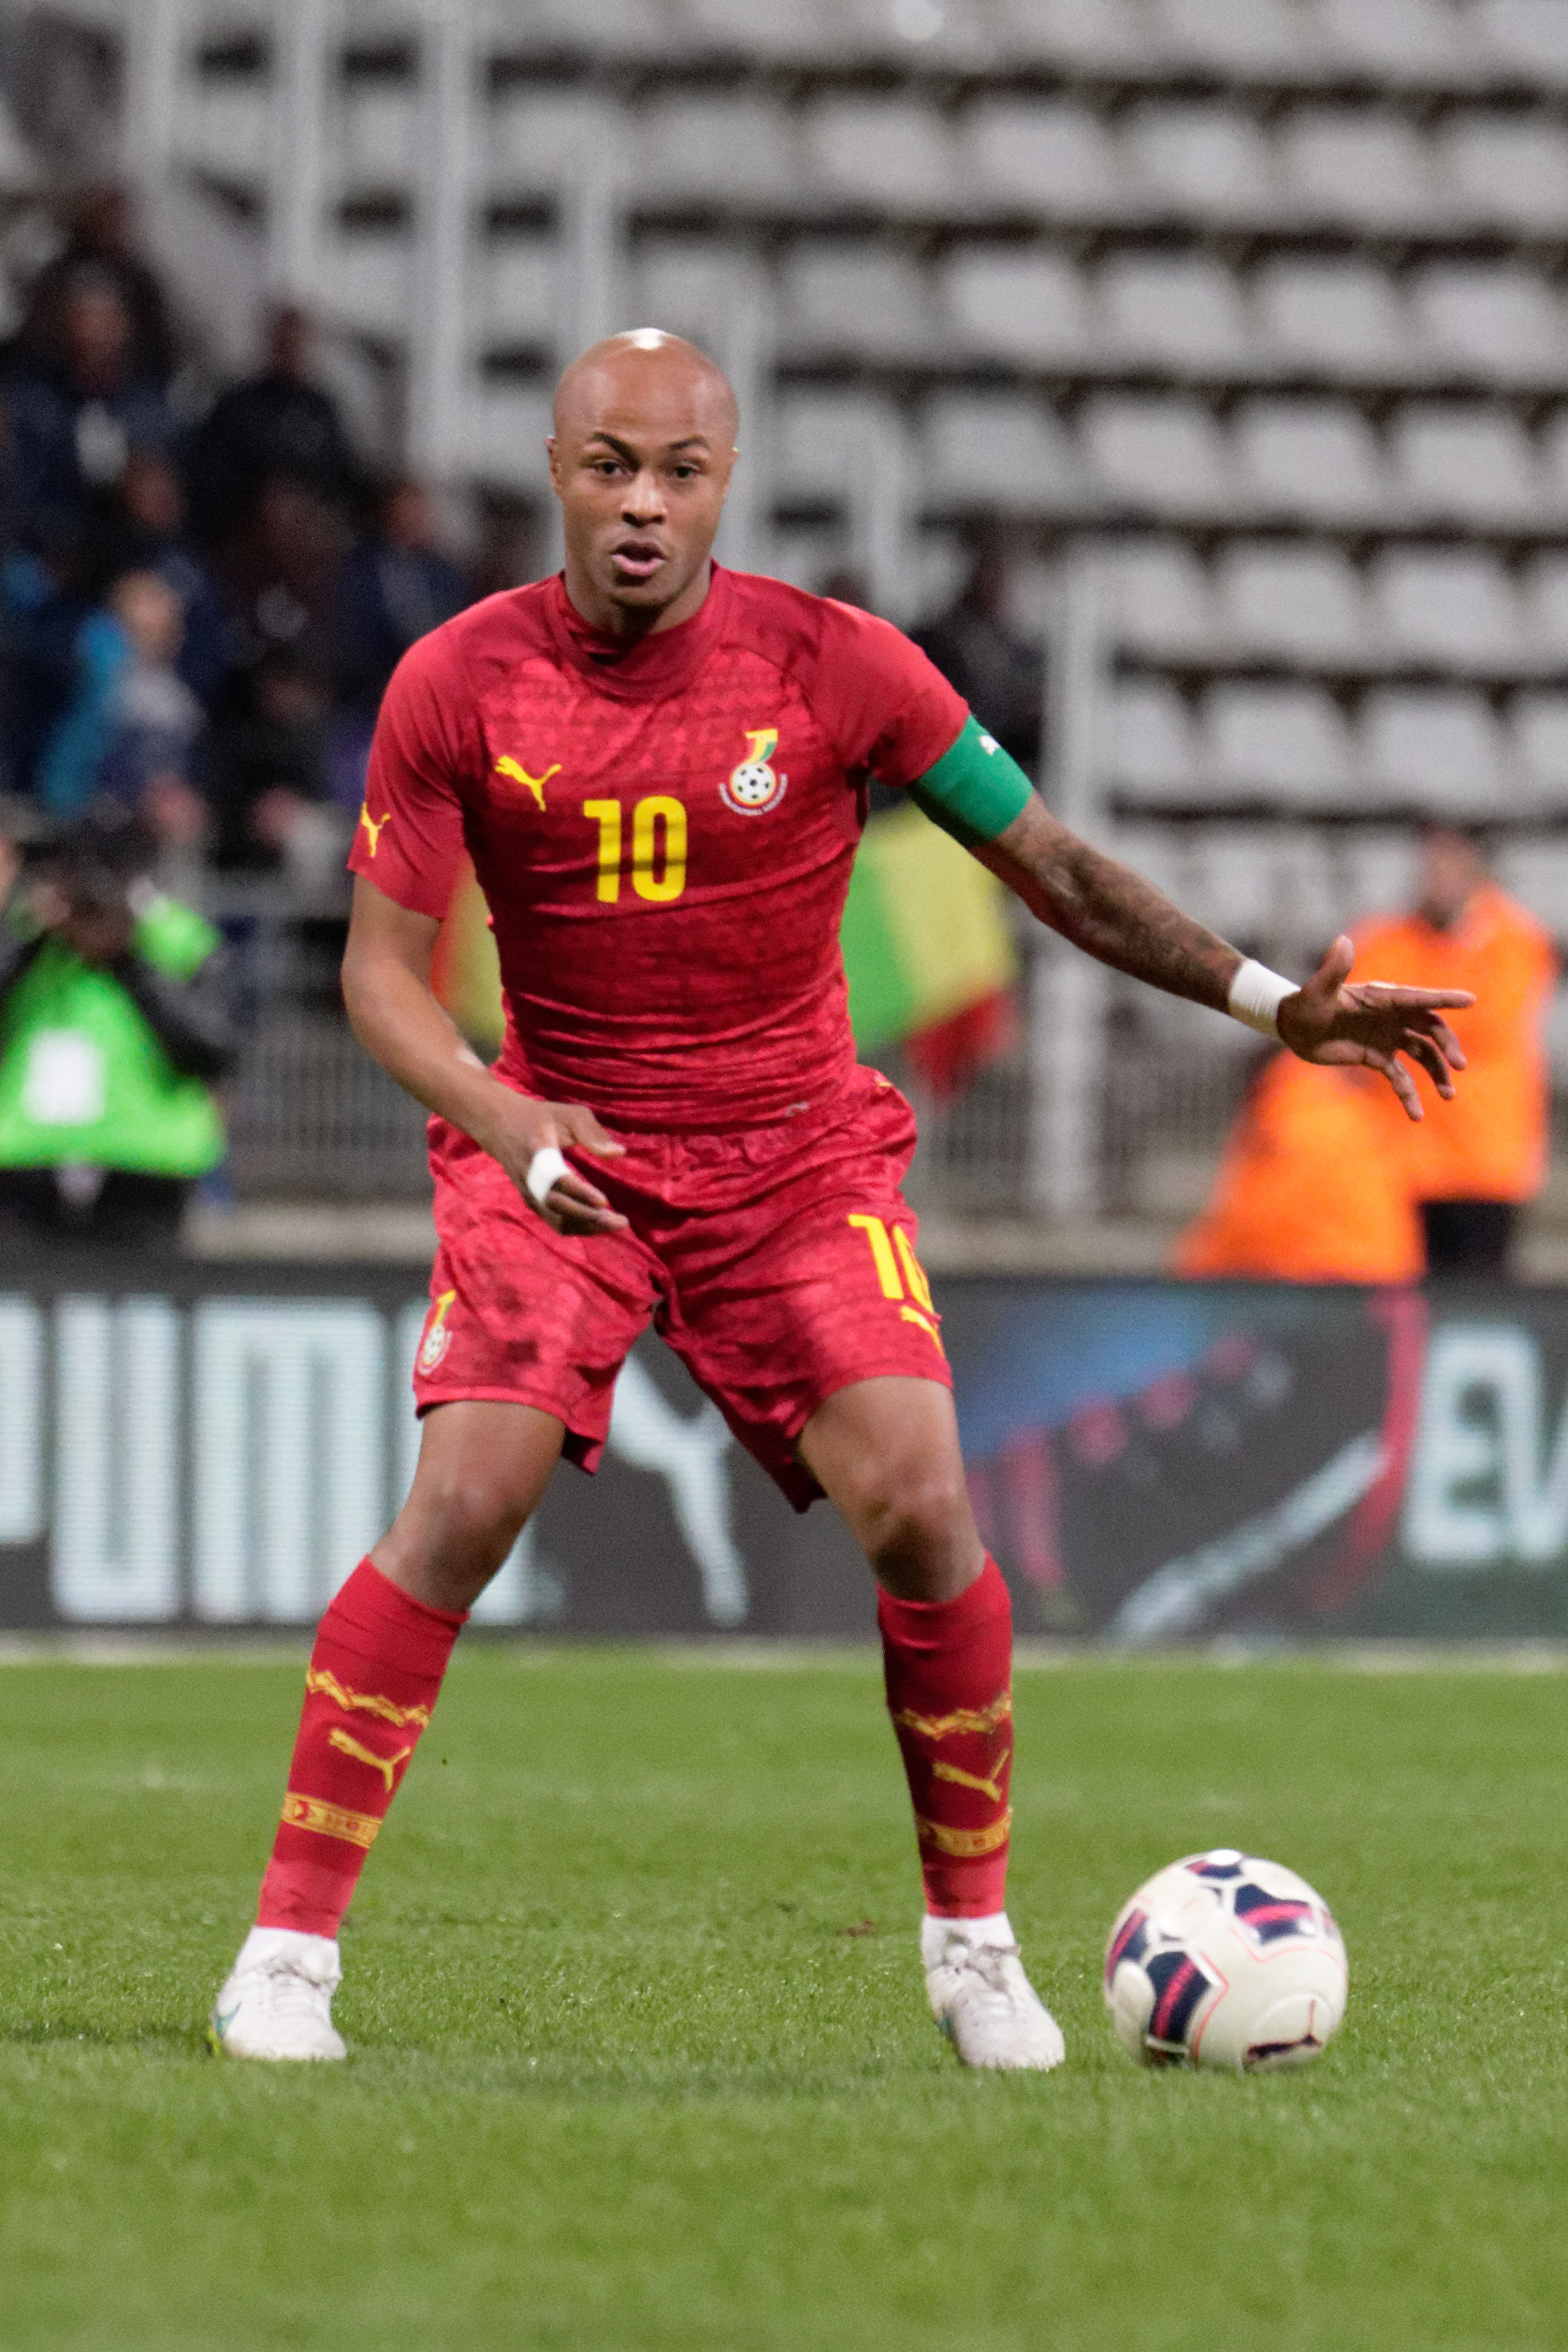 The 28-year old son of father Abedi Pele and mother Maha Ayew, André Ayew in 2018 photo. André Ayew earned a  million dollar salary - leaving the net worth at 22 million in 2018